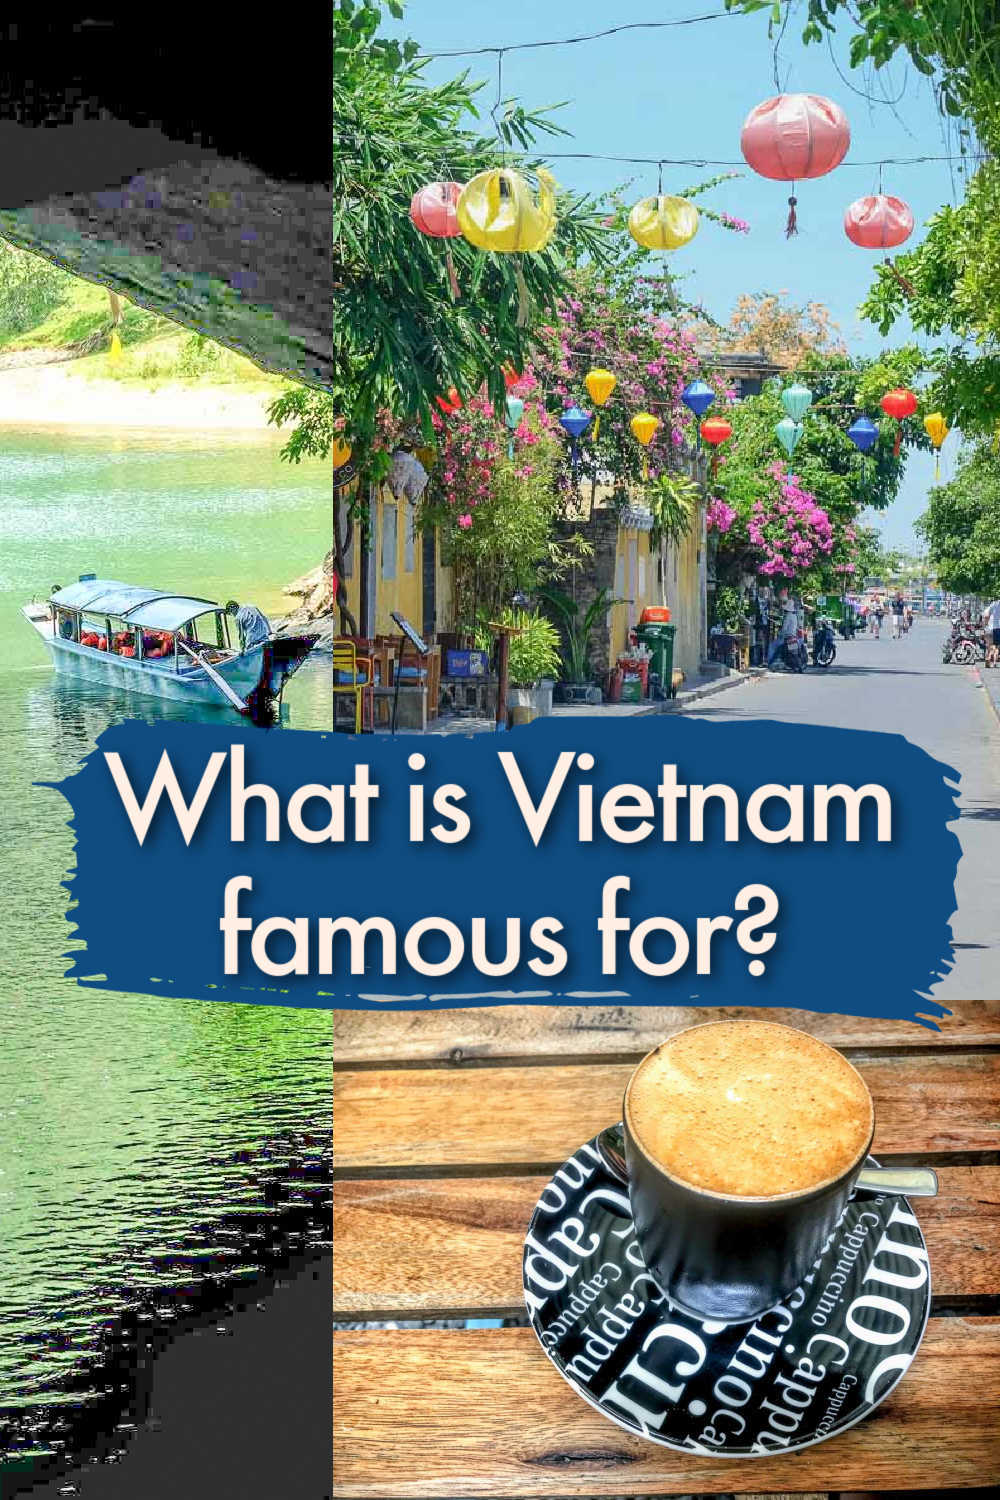 Vietnam is famous for its food, history, war, and many other amazing things you can only do and see there. So if you are dreaming of an unforgettable trip to Vietnam this post will feed you with wanderlust and practical information to enjoy the best of Vietnam from North to South, from beaches to mountains, passing by busy cities like Hanoi and Ho Chi Minh. Plus travel tips to plan your Vietnam holiday, from visas to accommodation and tours.